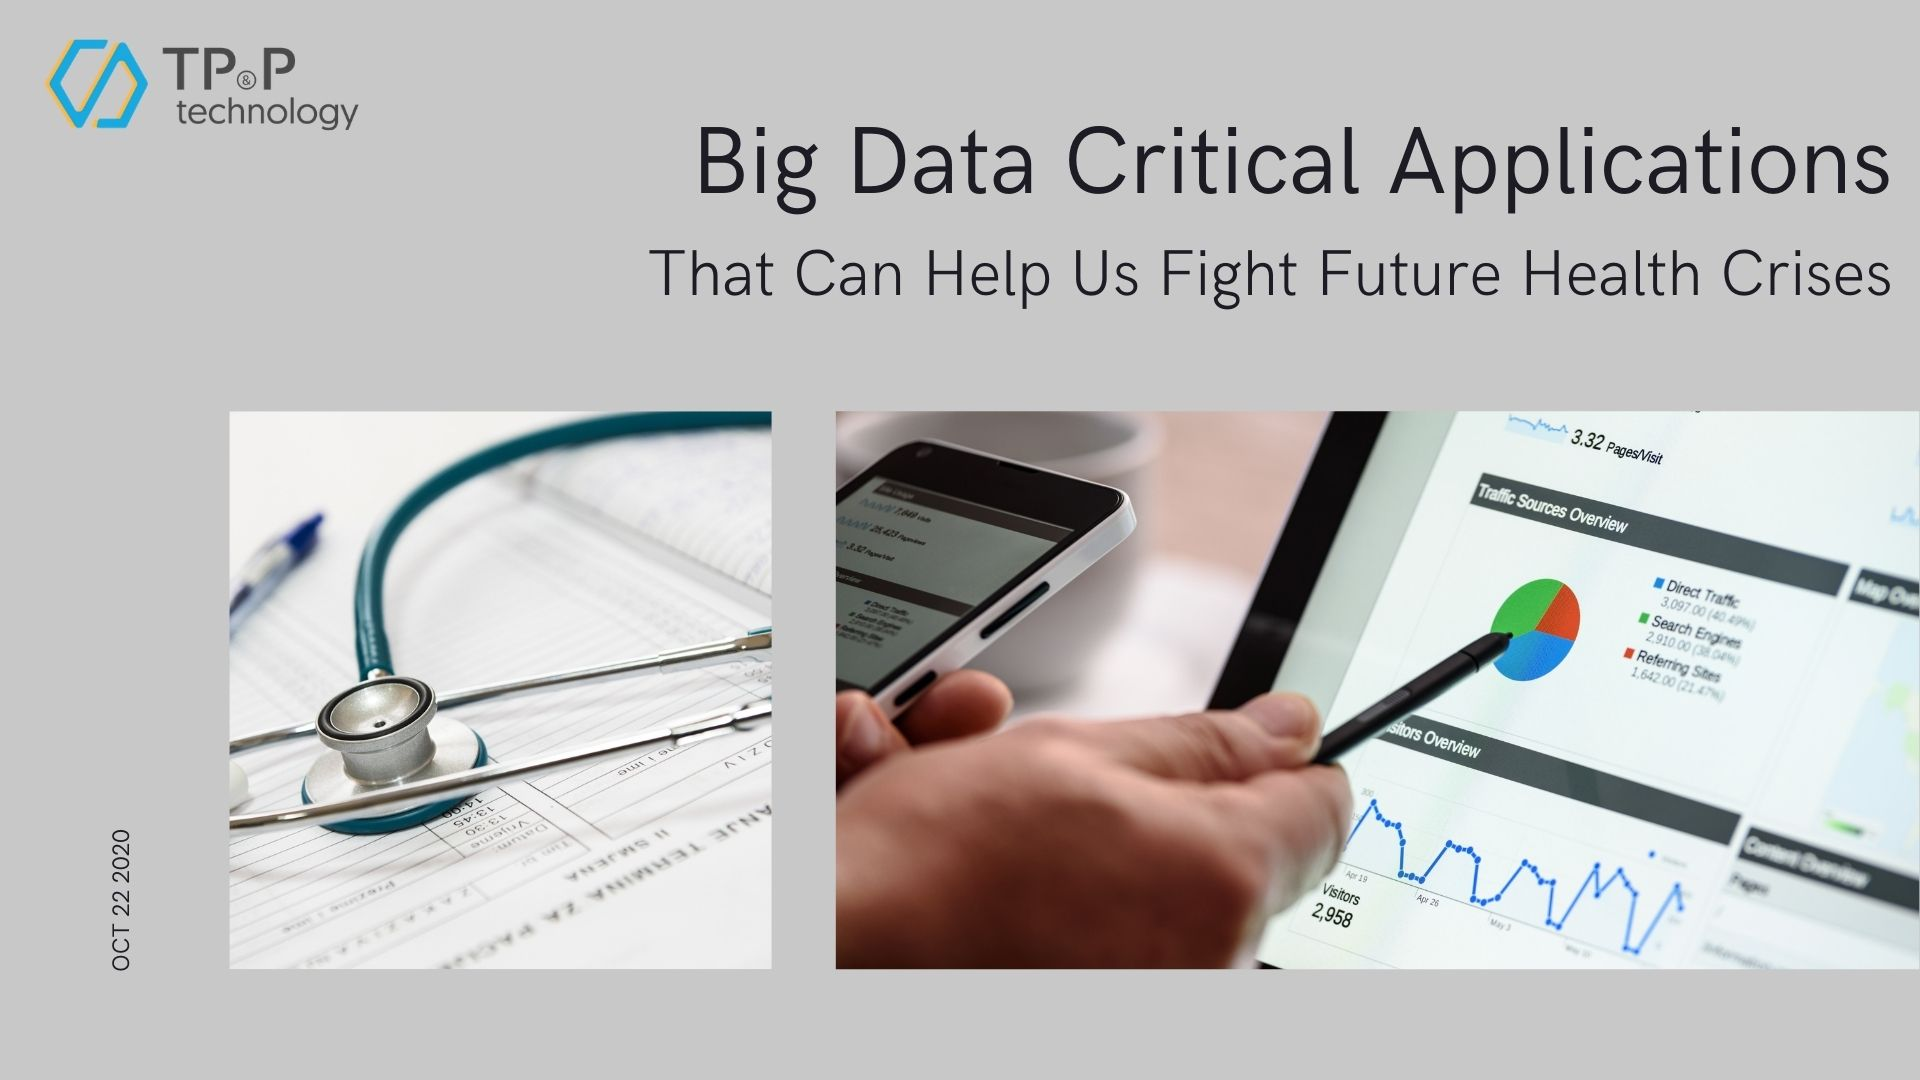 Big Data Critical Applications That Can Help Us Fight Future Health Crises